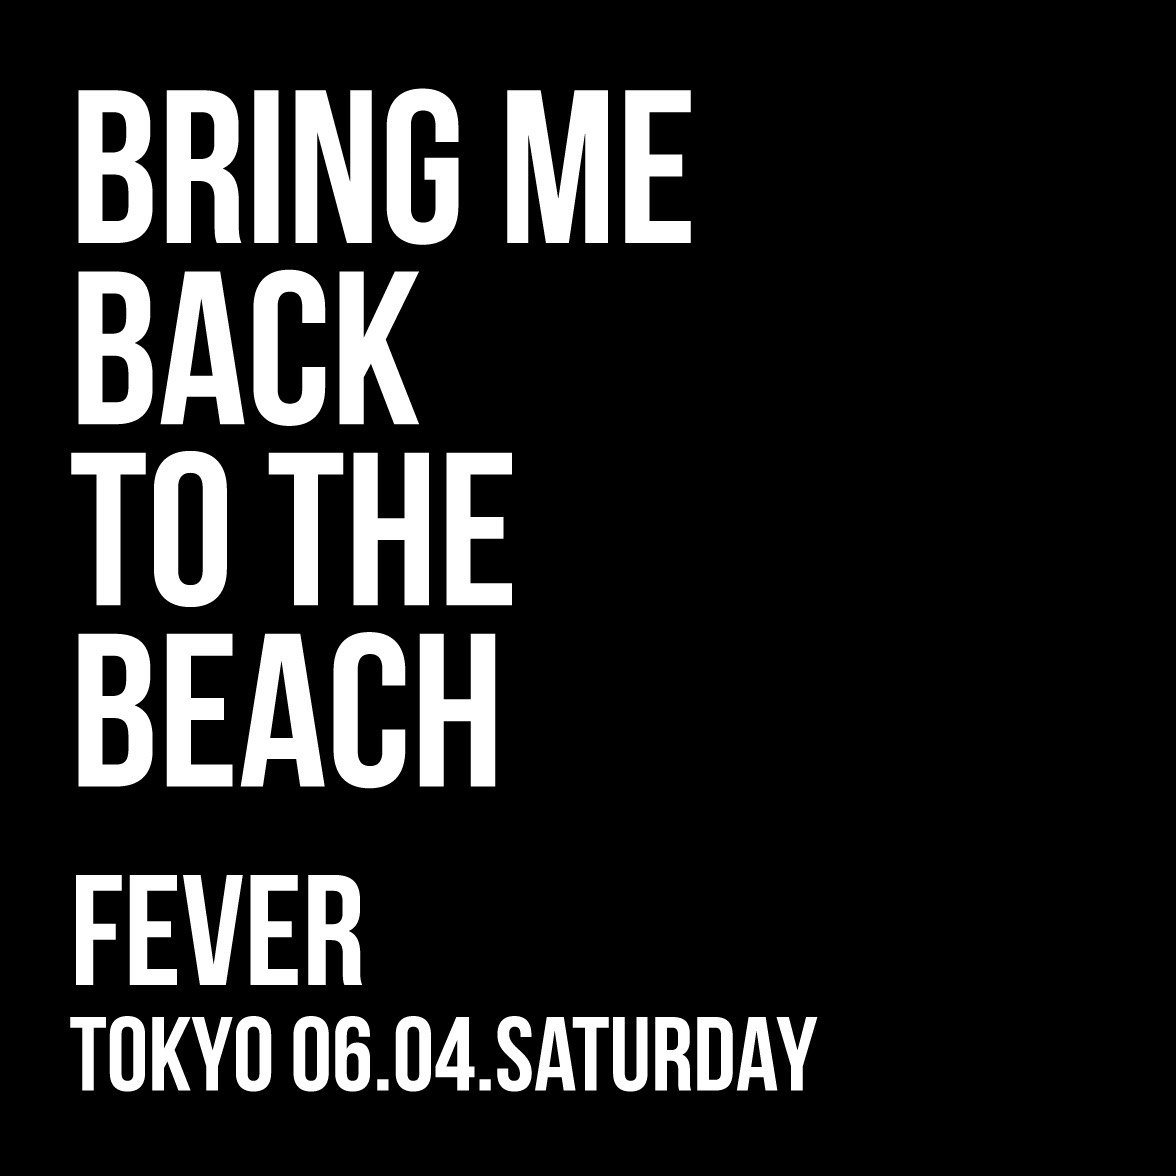 THE BEACHES Pre 『BRING ME BACK TO THE BEACH』 6/4(土)@新代田FEVER 18:30/¥3500(D別) LIVE: THE BEACHES DJ: 田中宗一郎 Parade Boys https://t.co/AK0T92pidI